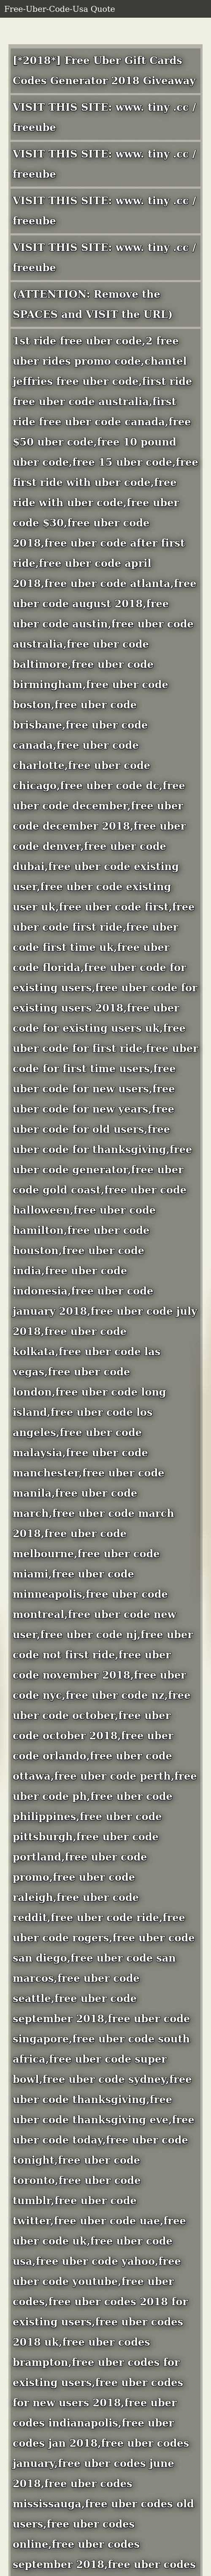 2018* Free Uber Gift Cards Codes Generator 2018 Giveaway